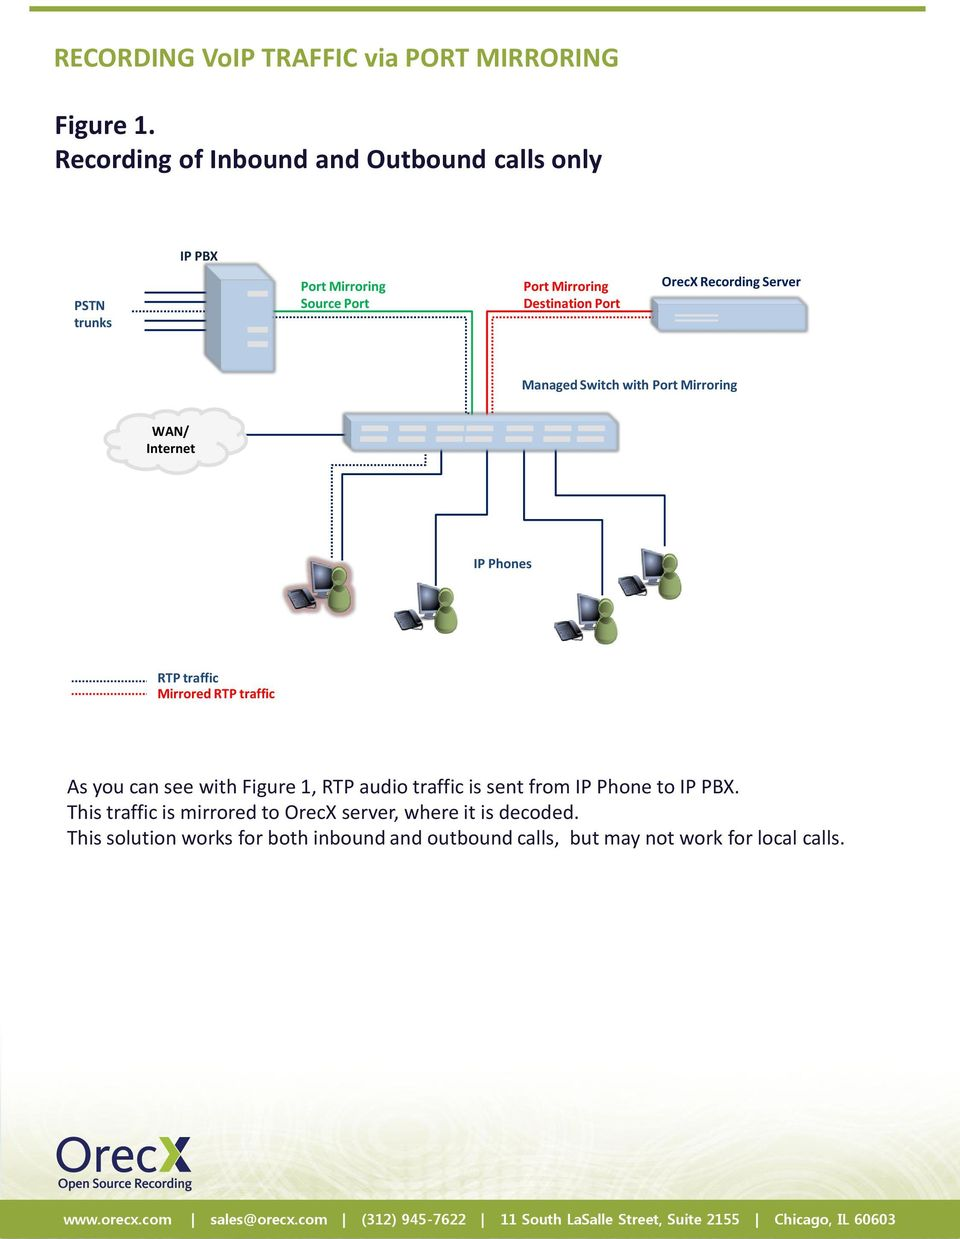 Switch with Mirrored As you can see with Figure 1, RTP audio traffic is sent from IP